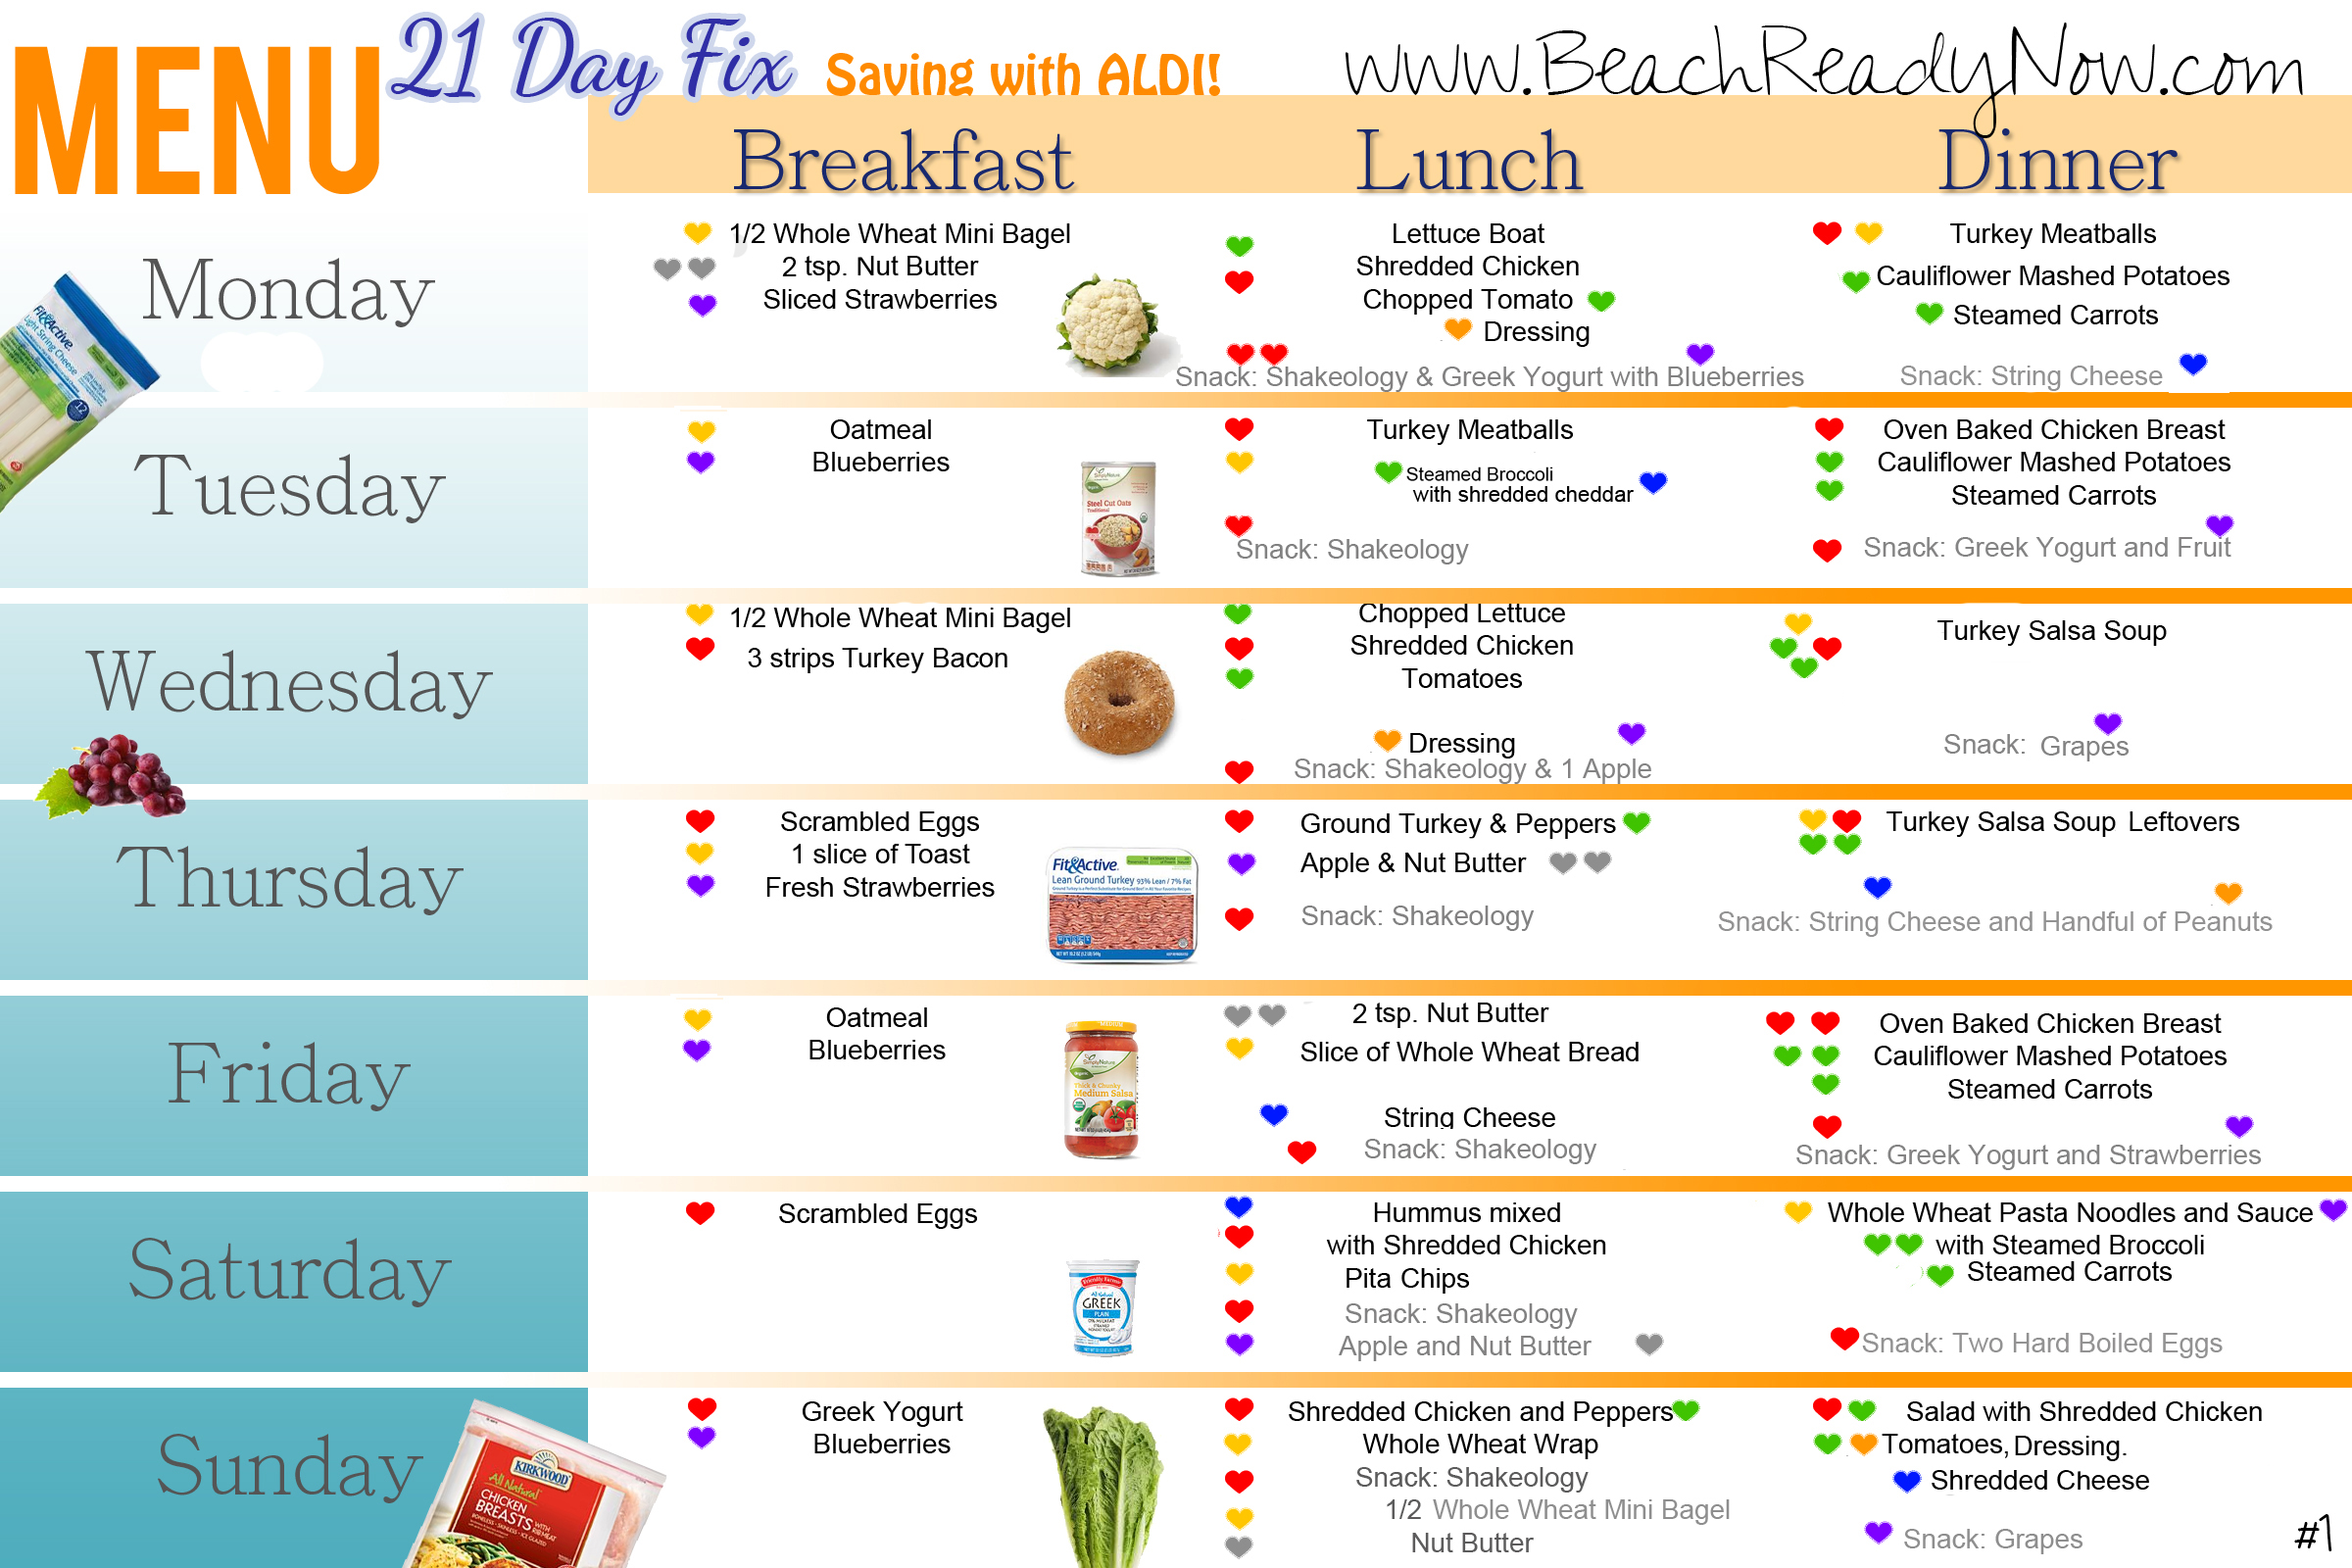 21 day fix aldi meal plan and shopping list beach ready now